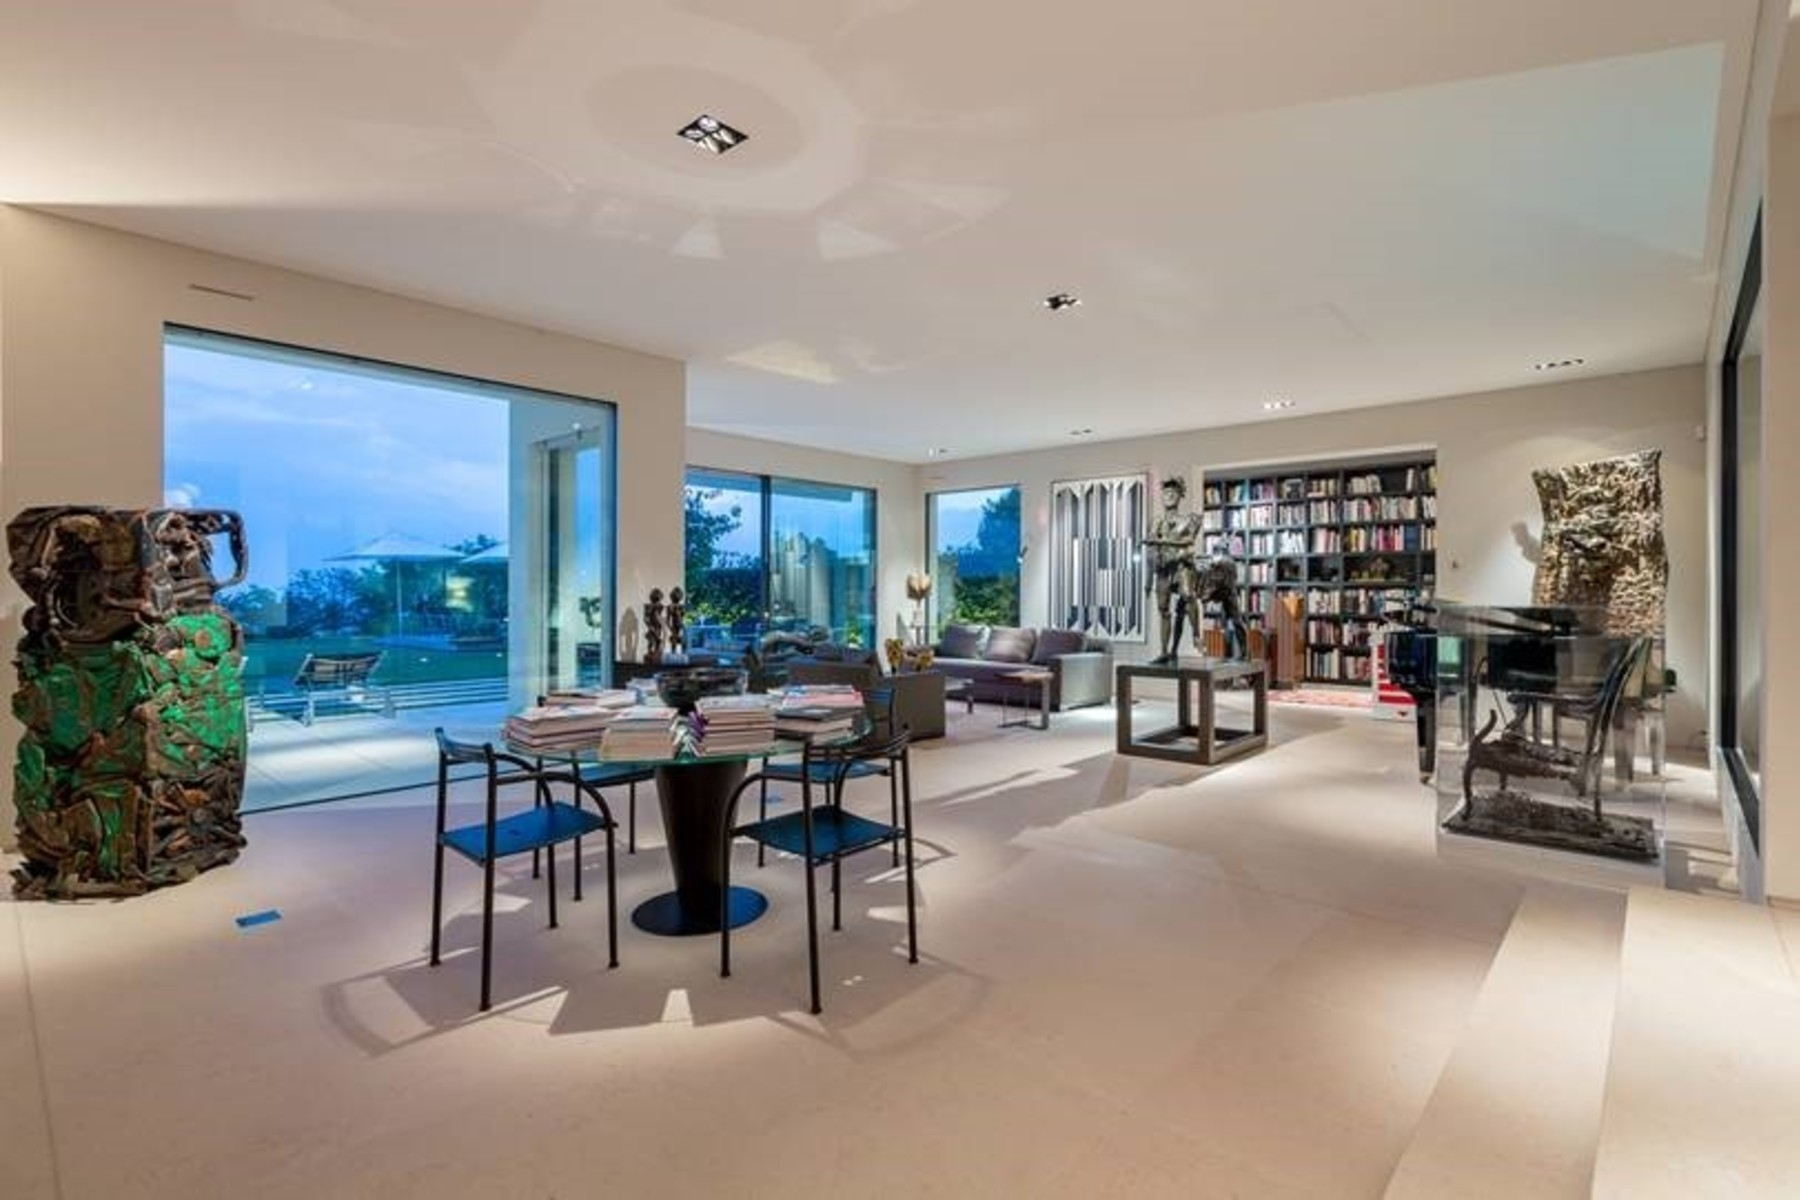 Duplex for Sale at Luxury duplex in the hills of Nyon Genolier, Genolier, Vaud, 1272 Switzerland